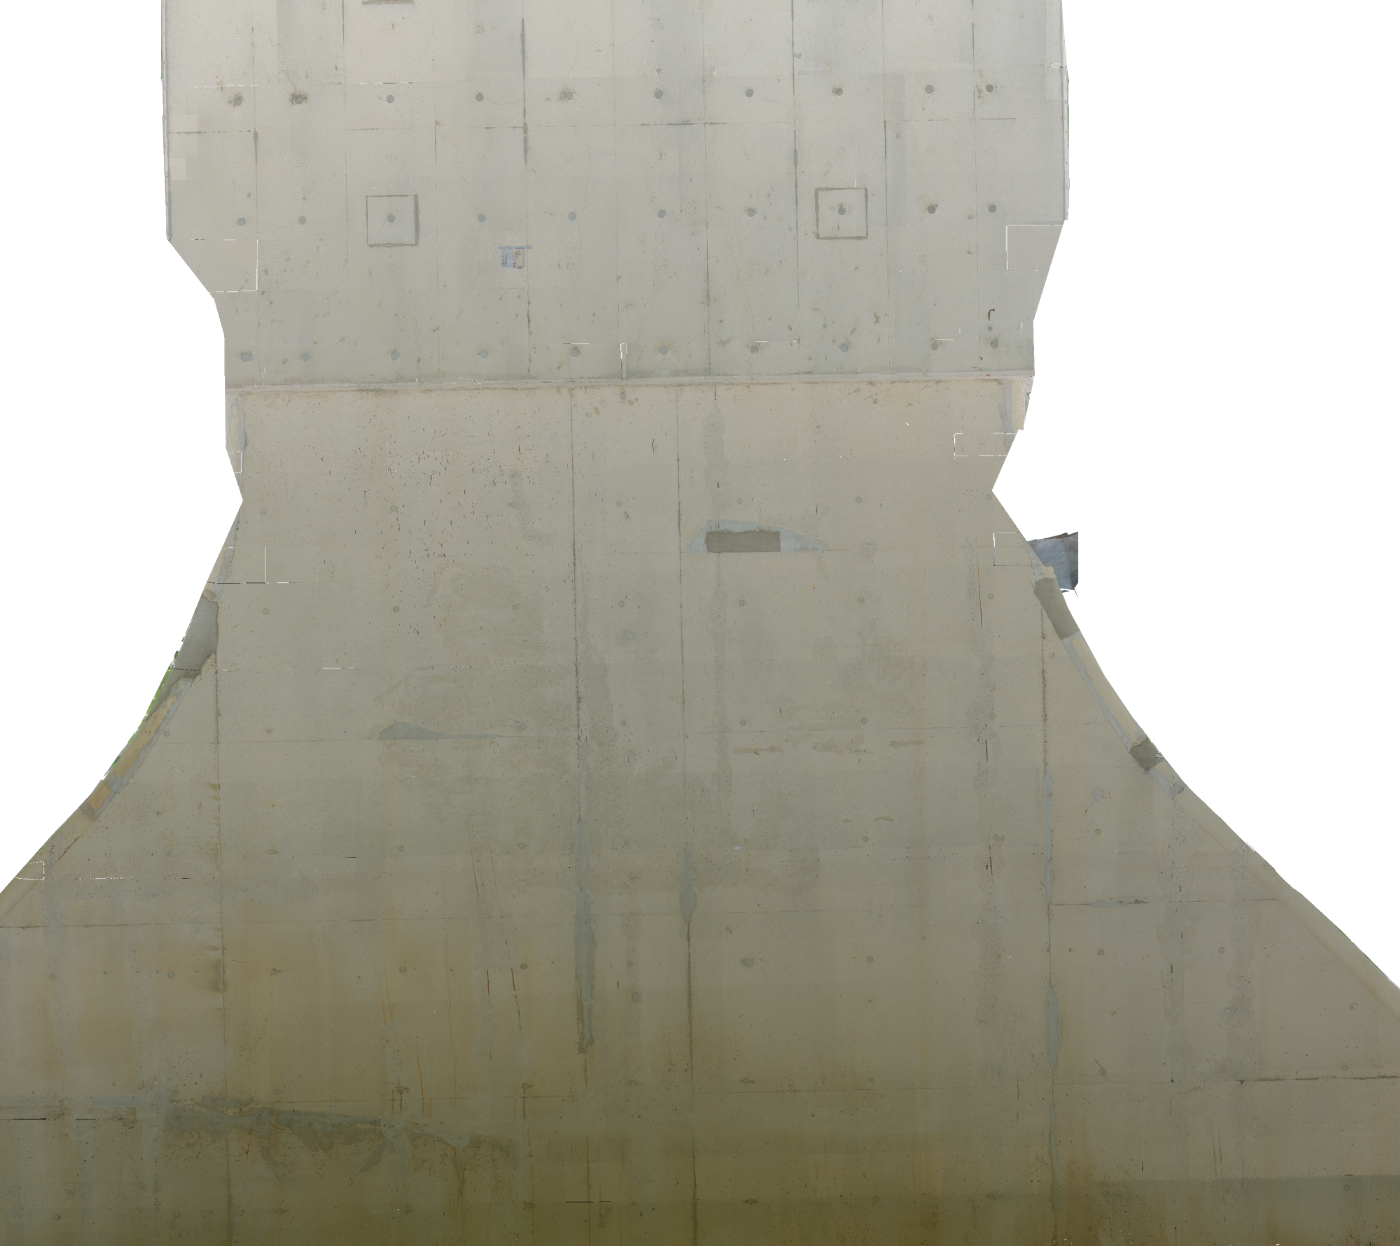 Side of a bridge support, for inspection of concrete defects